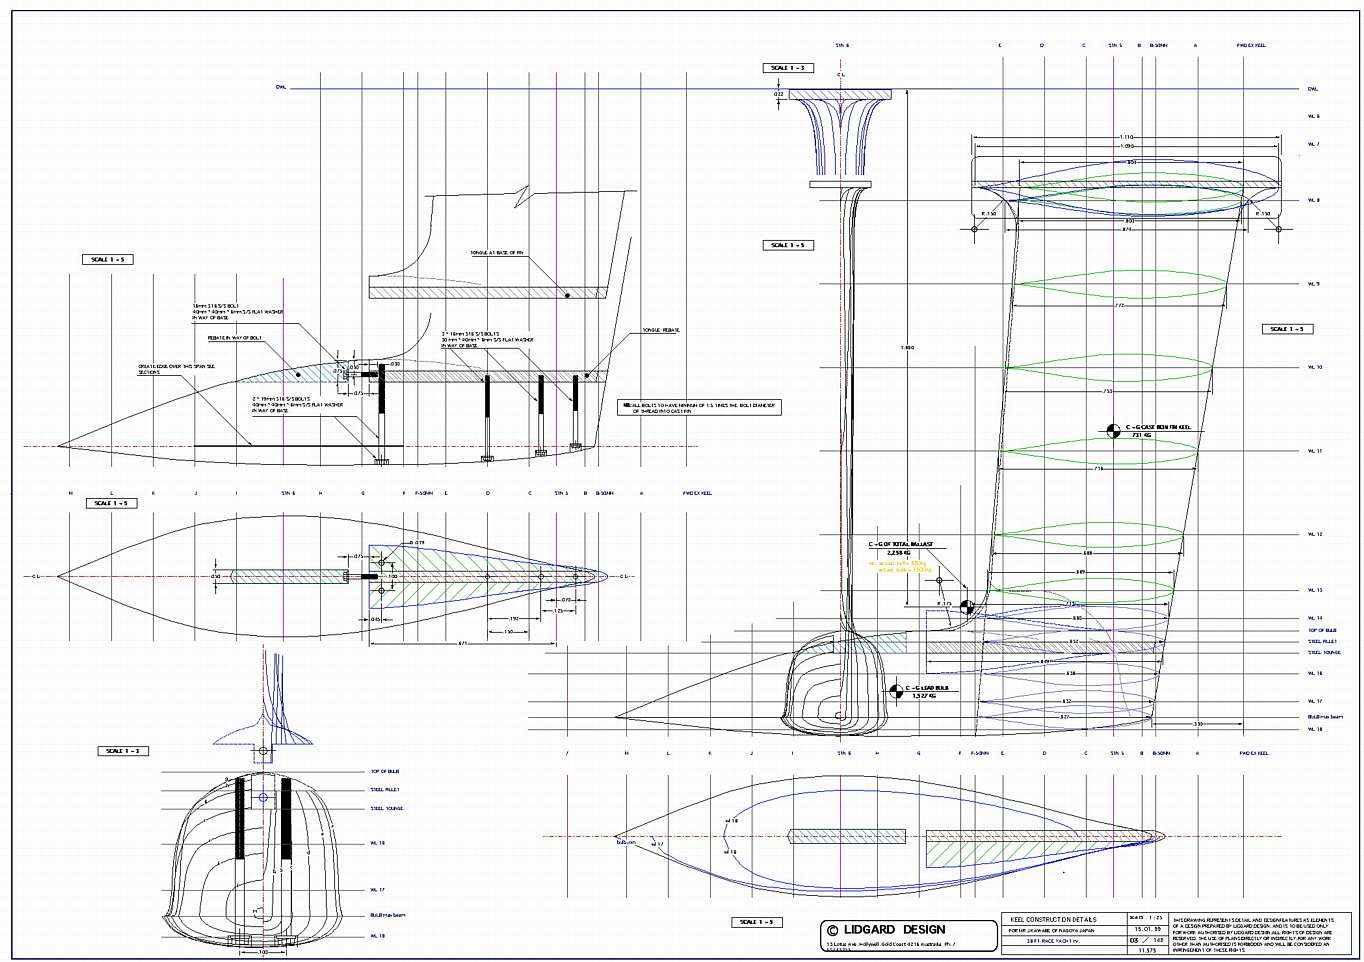 Steam Powered Engine Diagram also Pdf Marine Steam Engine Plans Randkey besides Ex Steam Engine further Book45 in addition Full Keel Sailboat Designs. on homemade steam engine plans